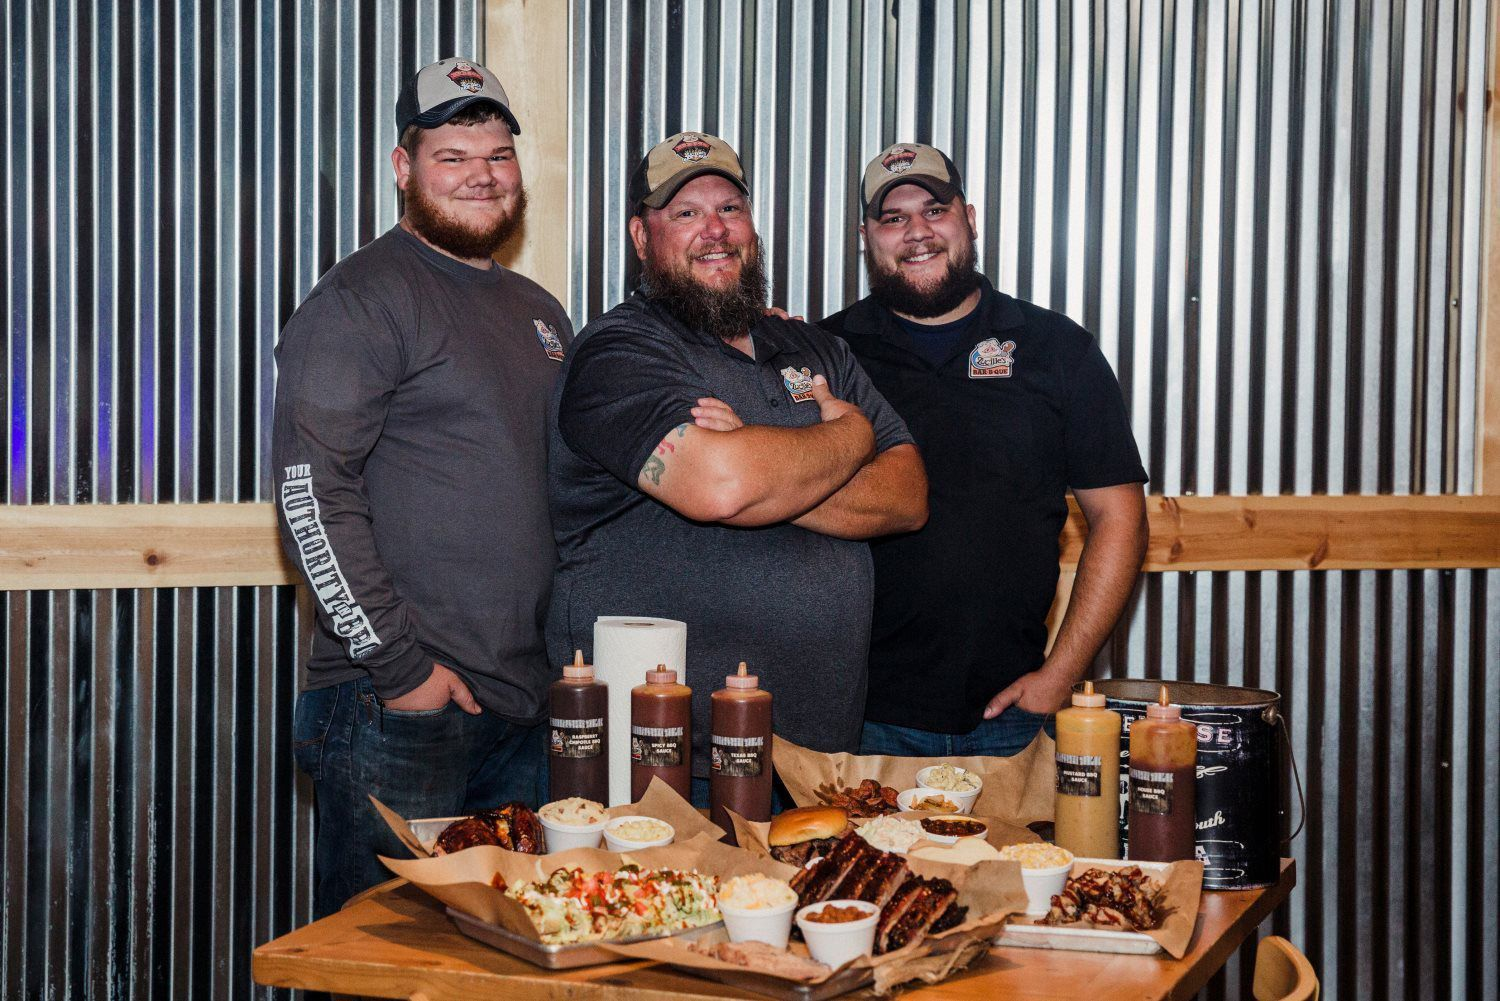 three large man with barbecue on the table